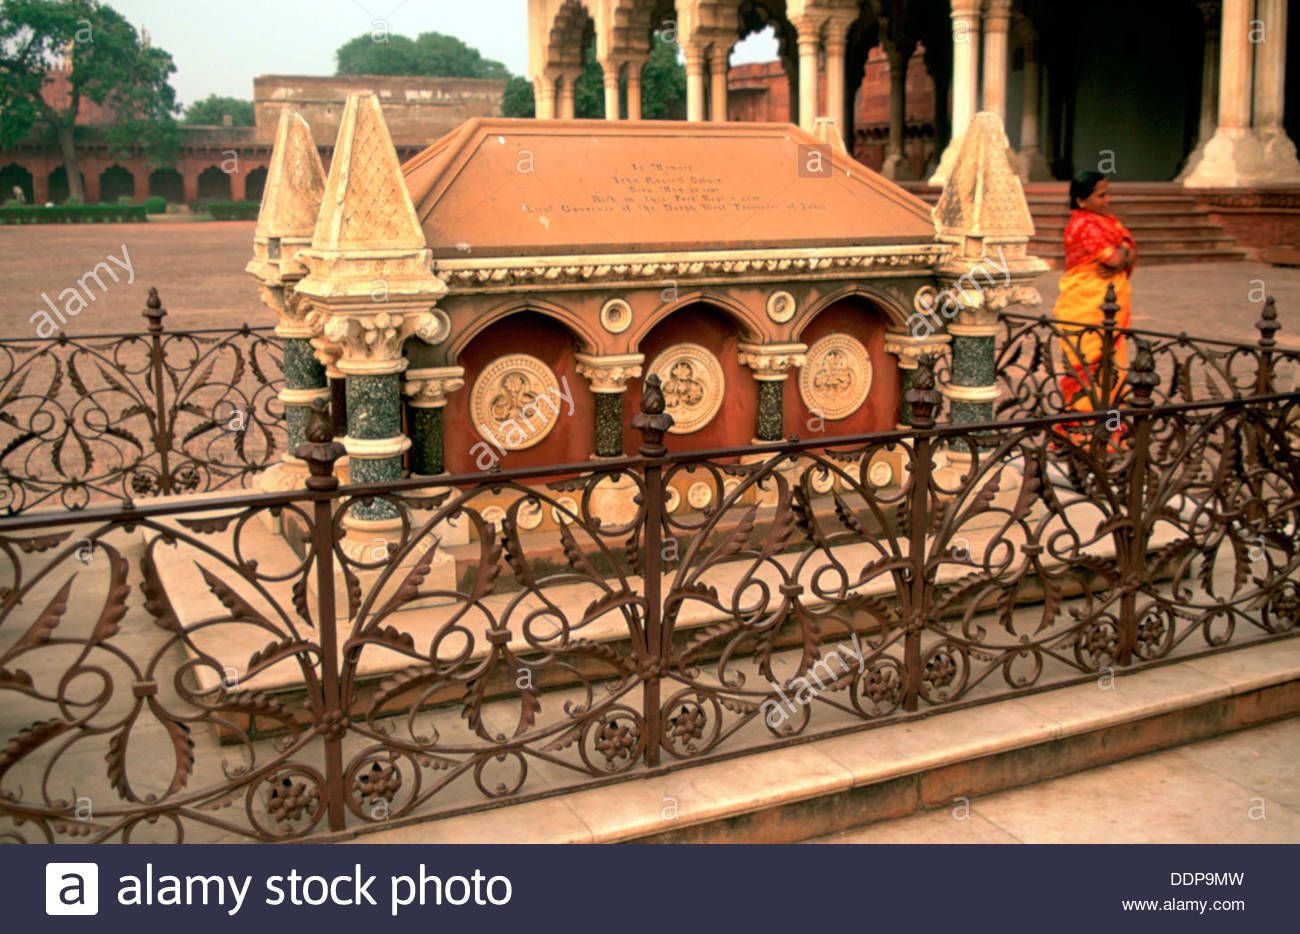 Tomb of John Russell Colvin, Fatehpur Sikri, India. Artist: Dr Stephen Coyne - Stock Image